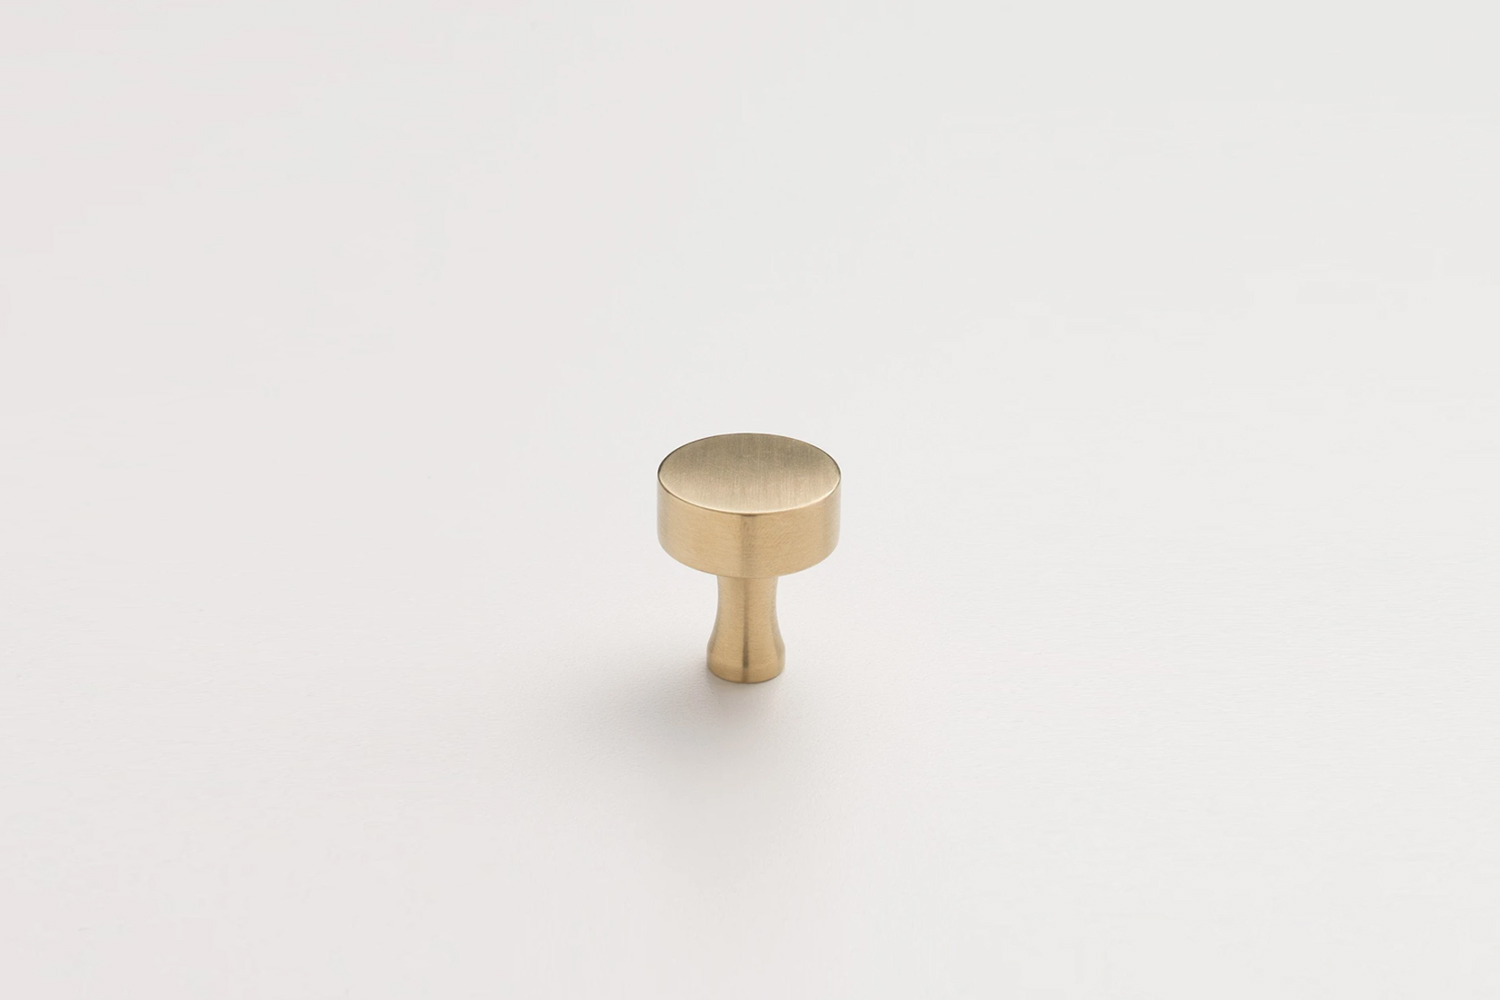 the schoolhouse riverwood knob, shown in natural brass, is \$\18. 9